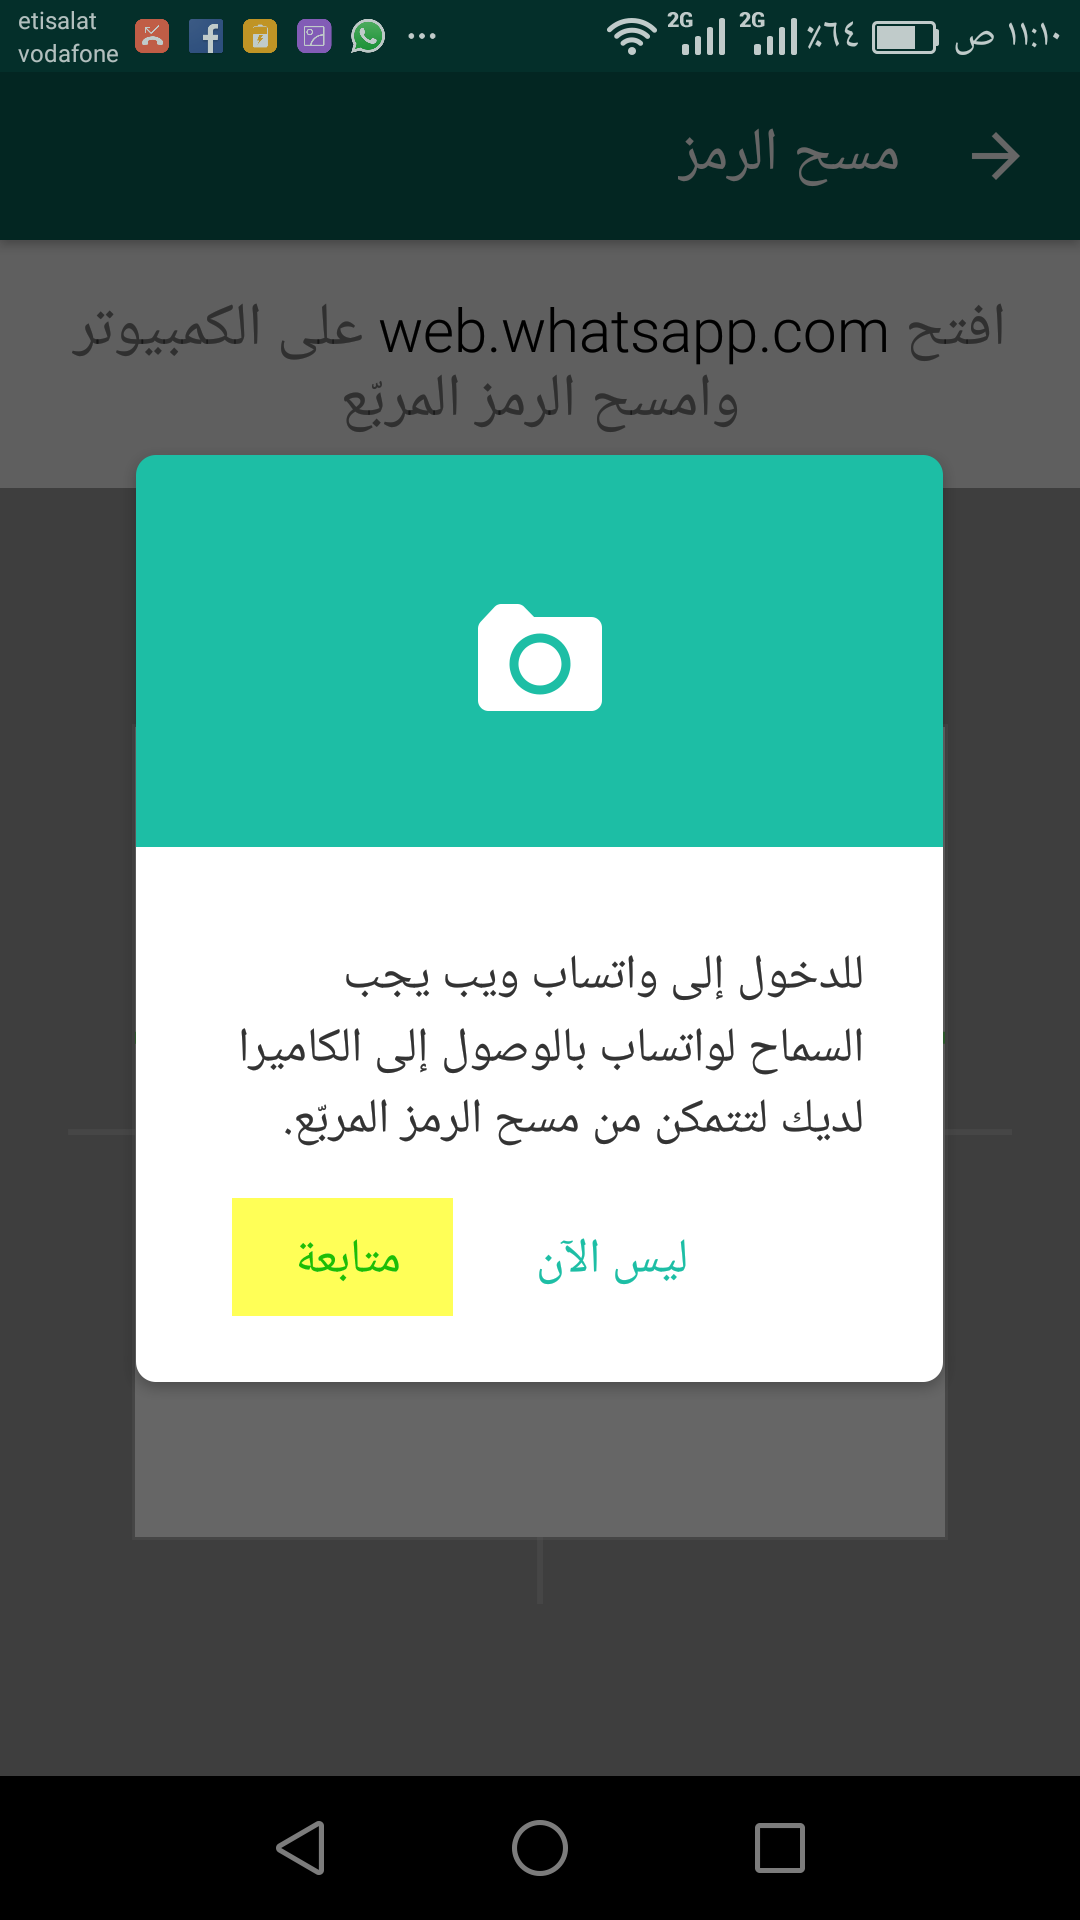 واتساب ويب whatsapp web